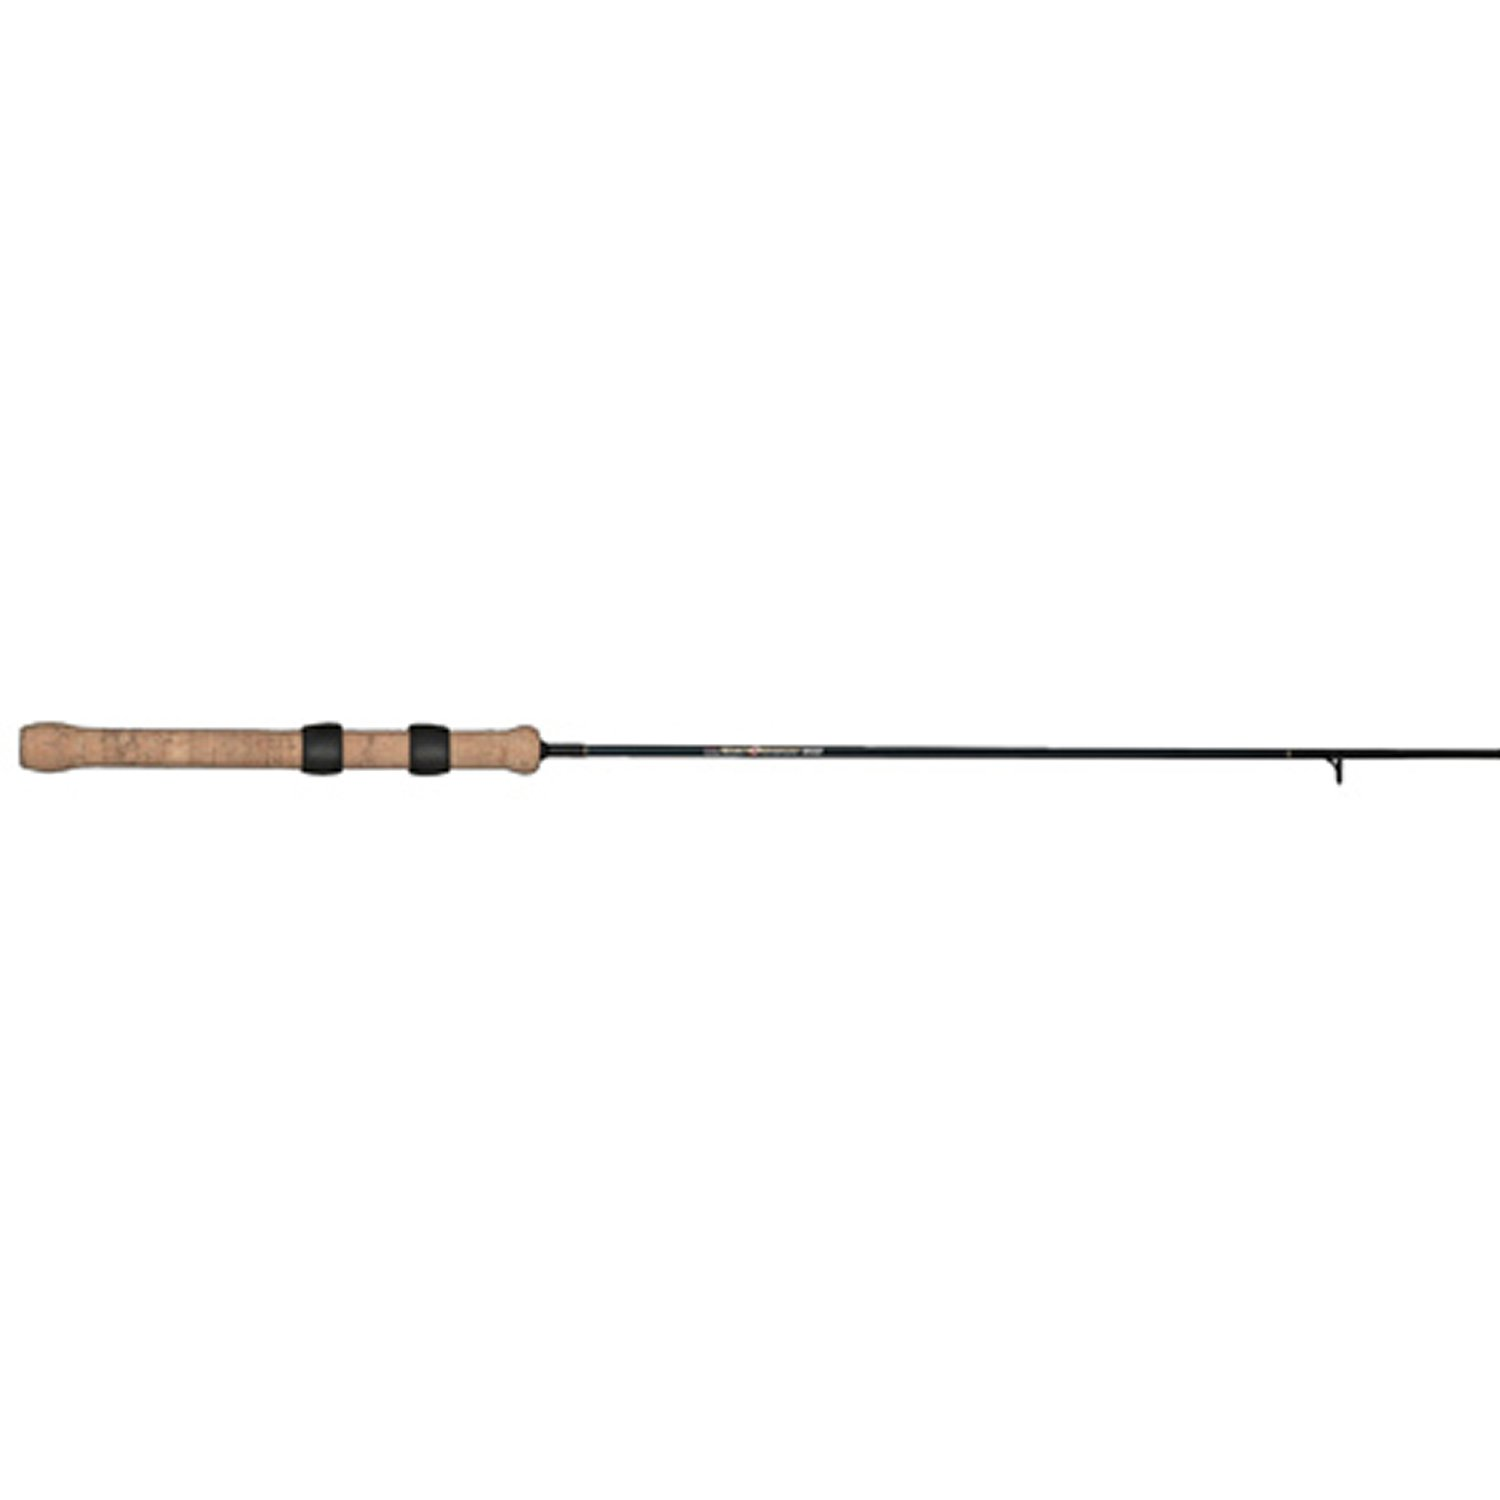 B'n'M 5-Feet 5-Inch 1 Piece Sharp Shooter Rod